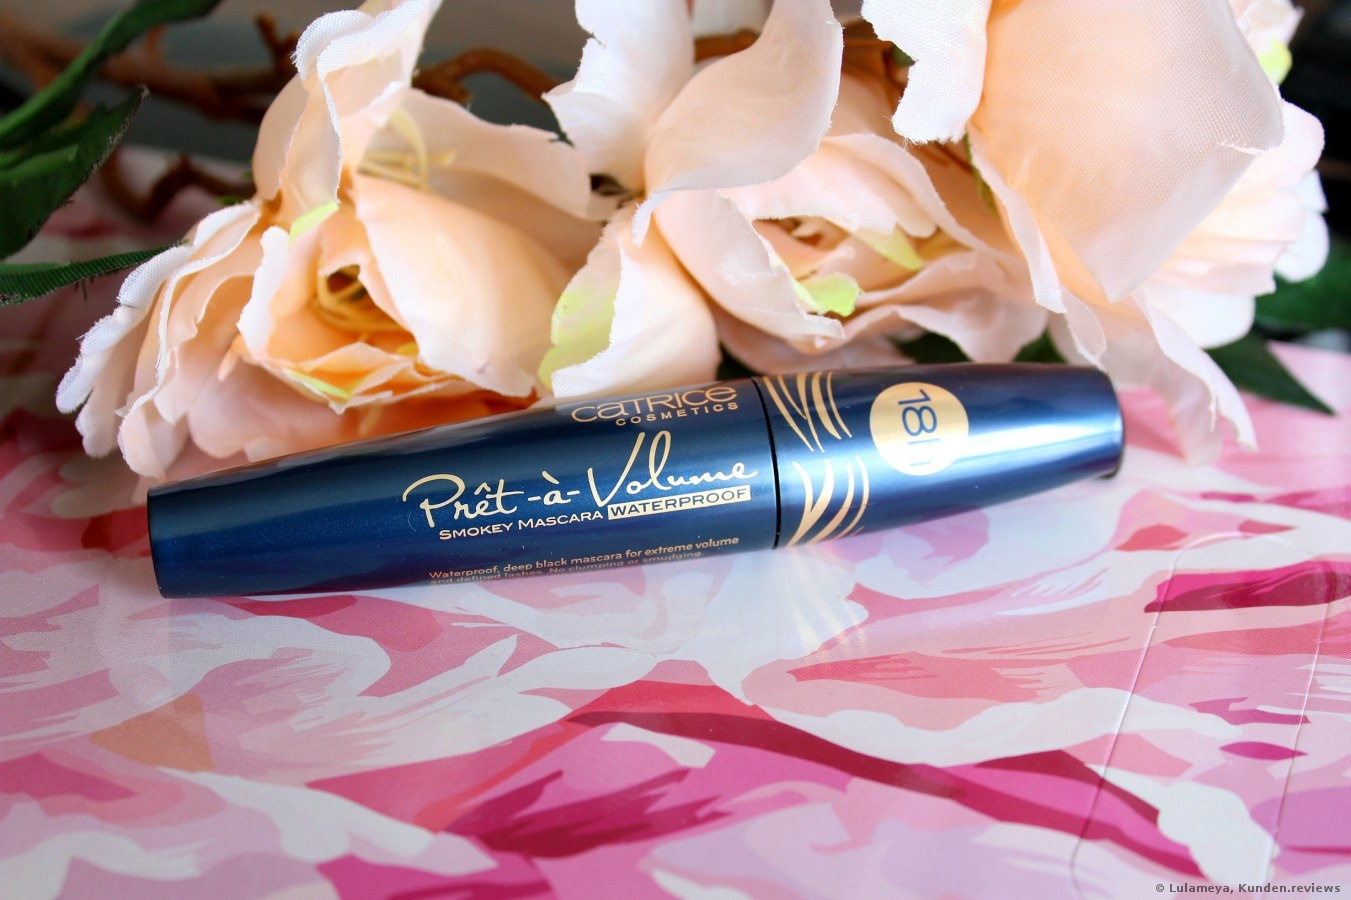 Catrice Pret-a-Volume Smokey Mascara Waterproof